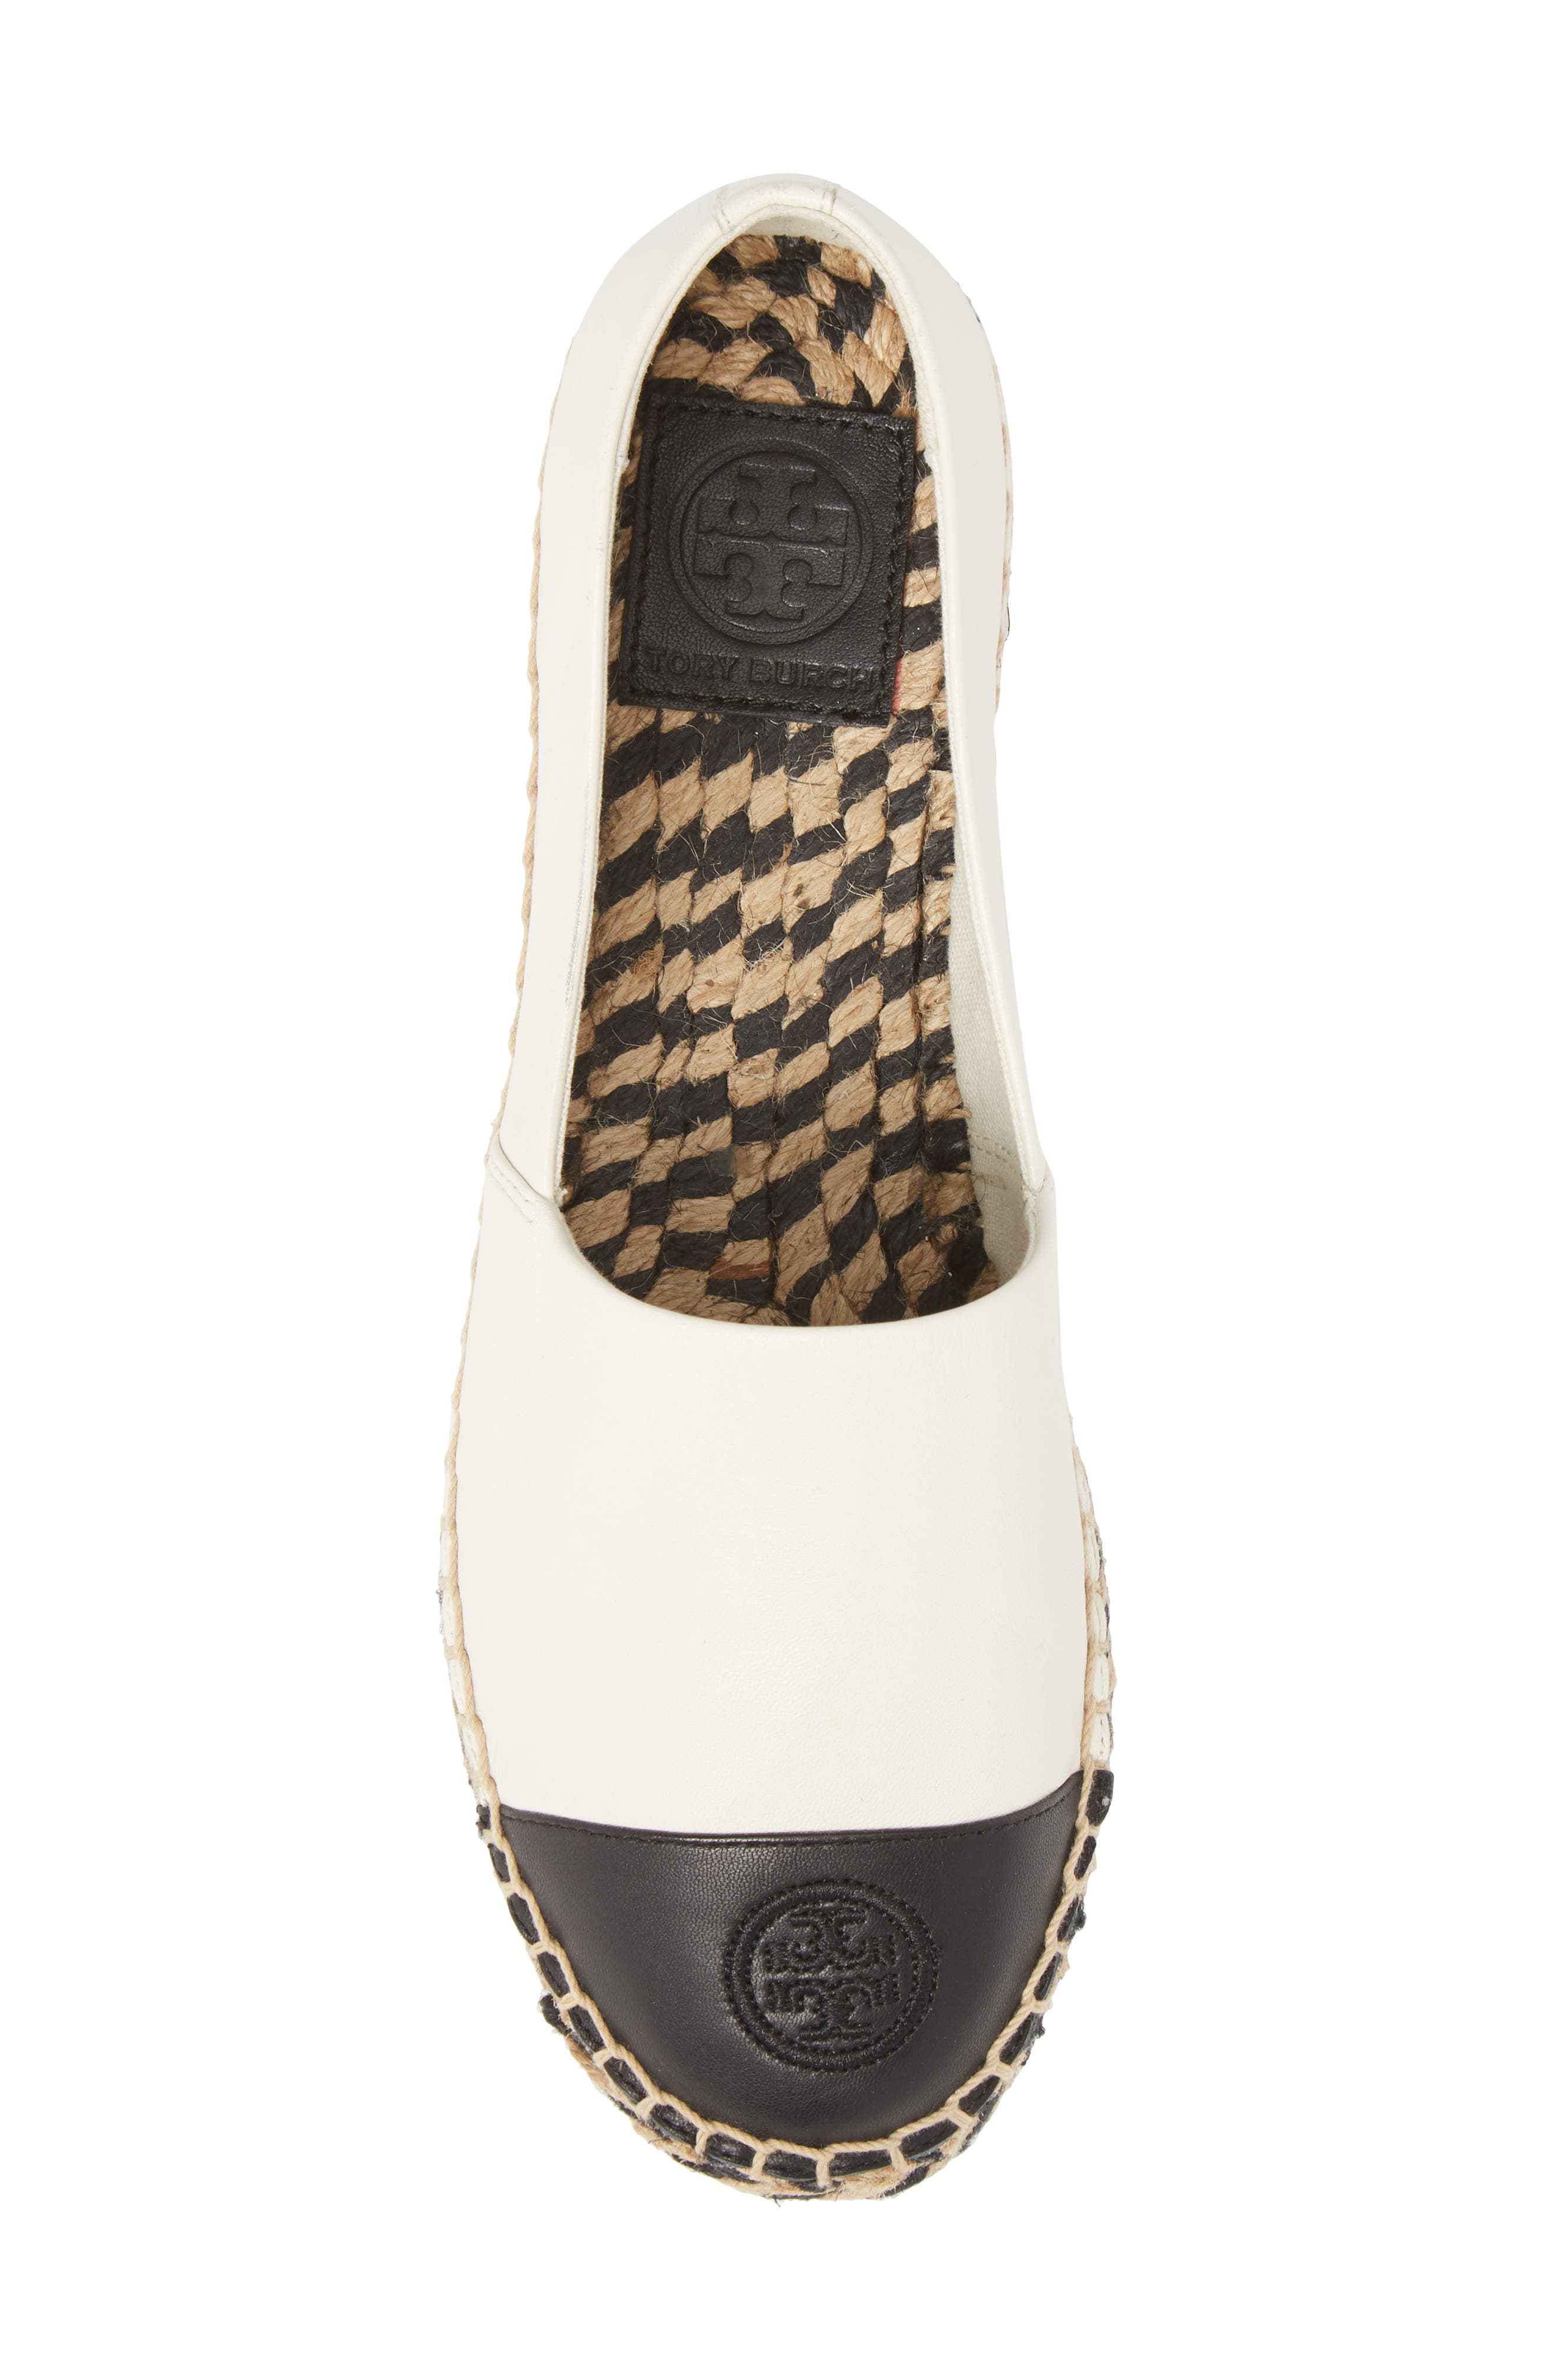 TORY BURCH, Colorblock Platform Espadrille, Alternate thumbnail 5, color, PERFECT IVORY/ PERFECT BLACK